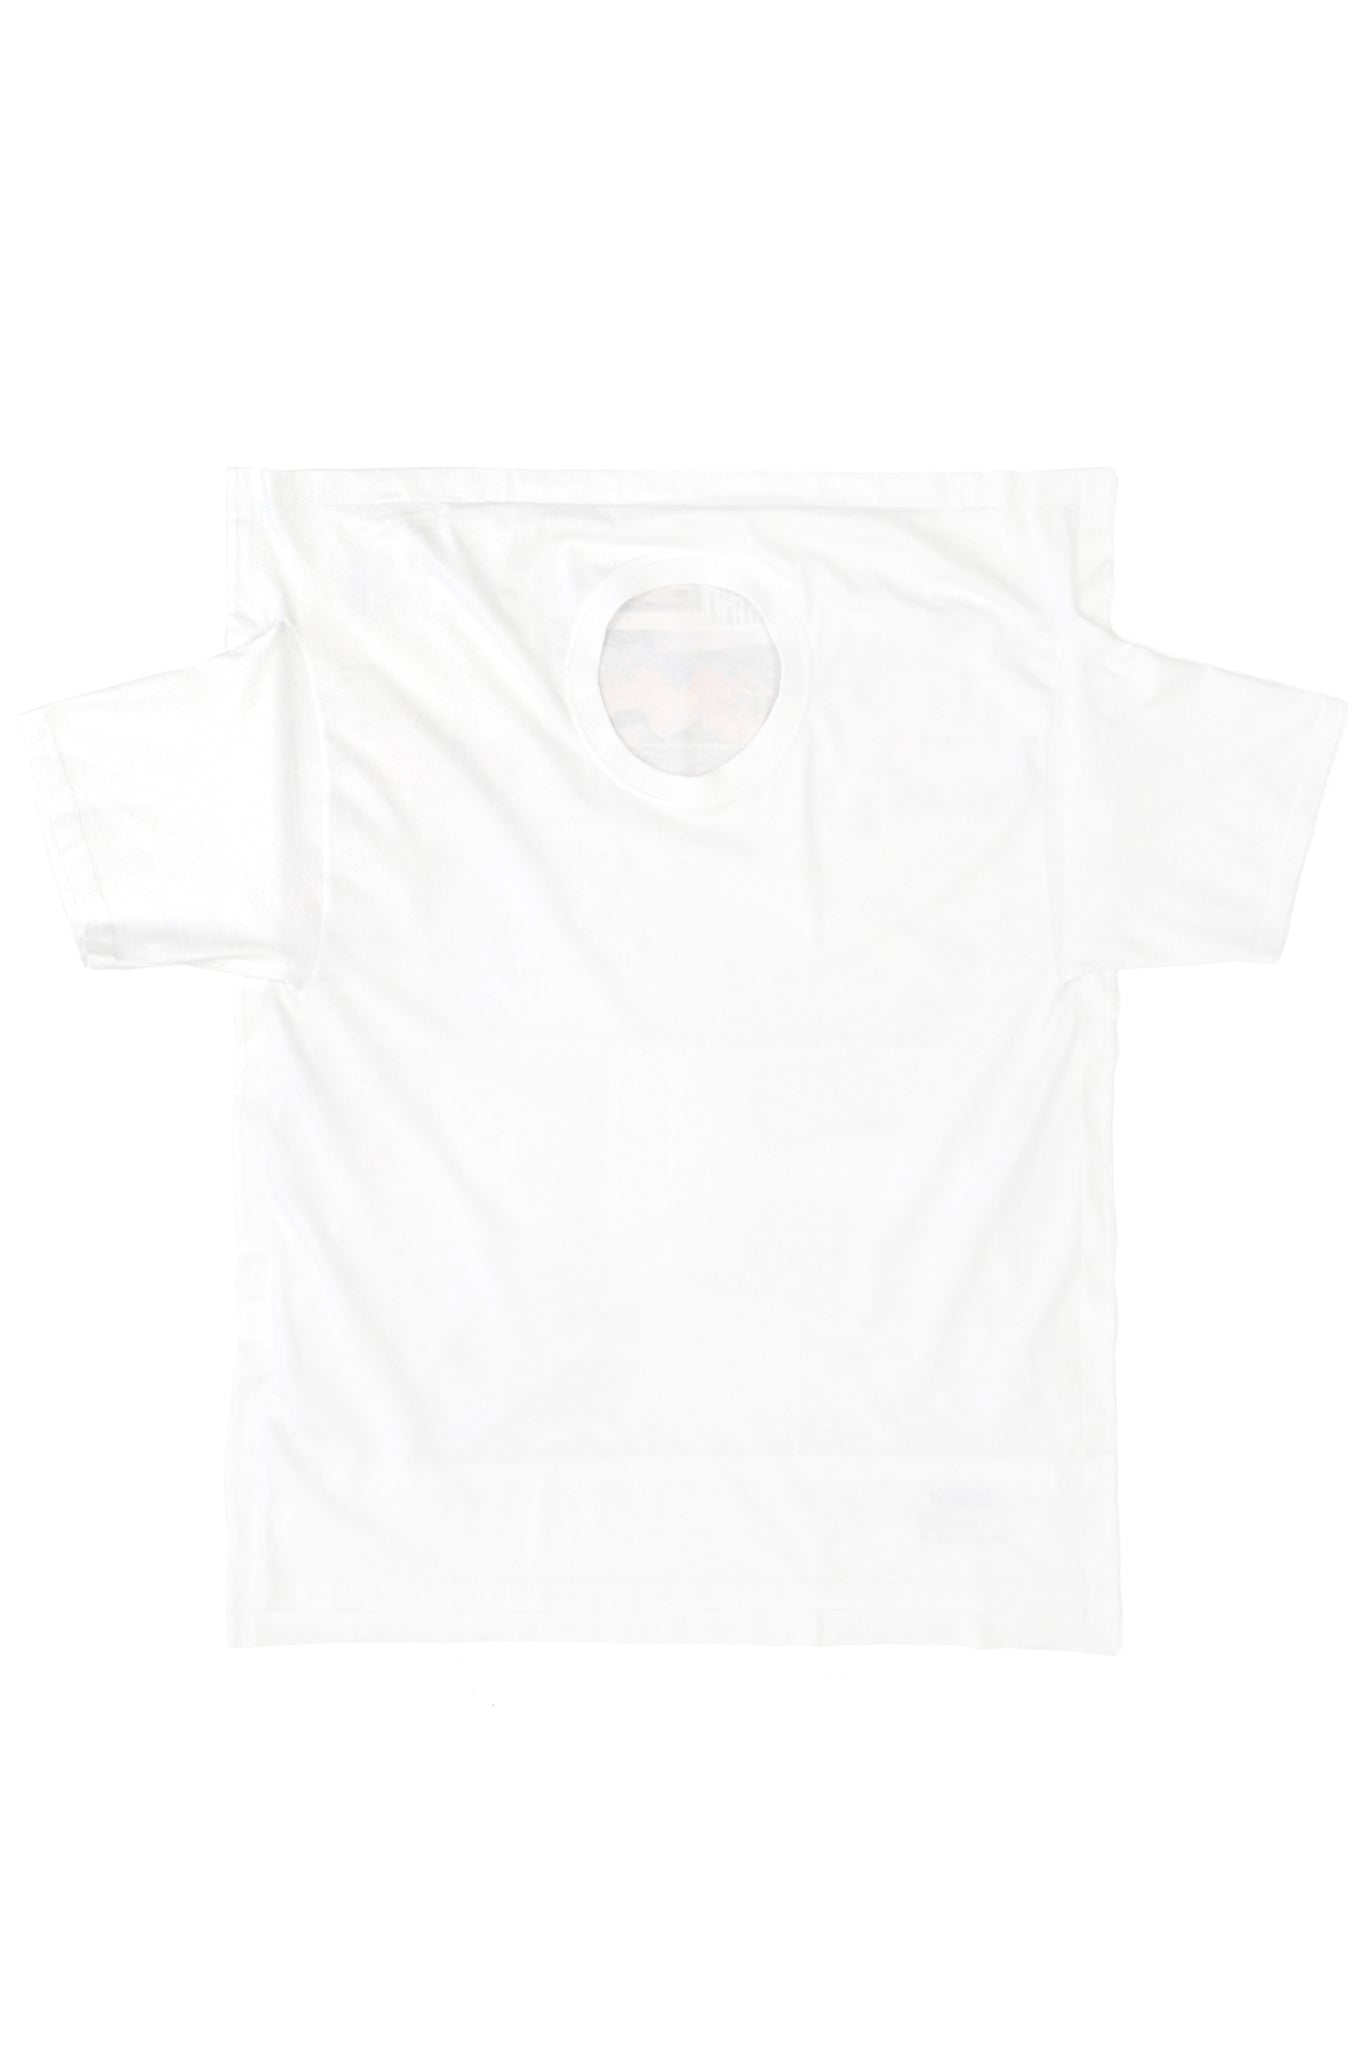 PZtoday© x HB Peace Pillowcase T-shirt